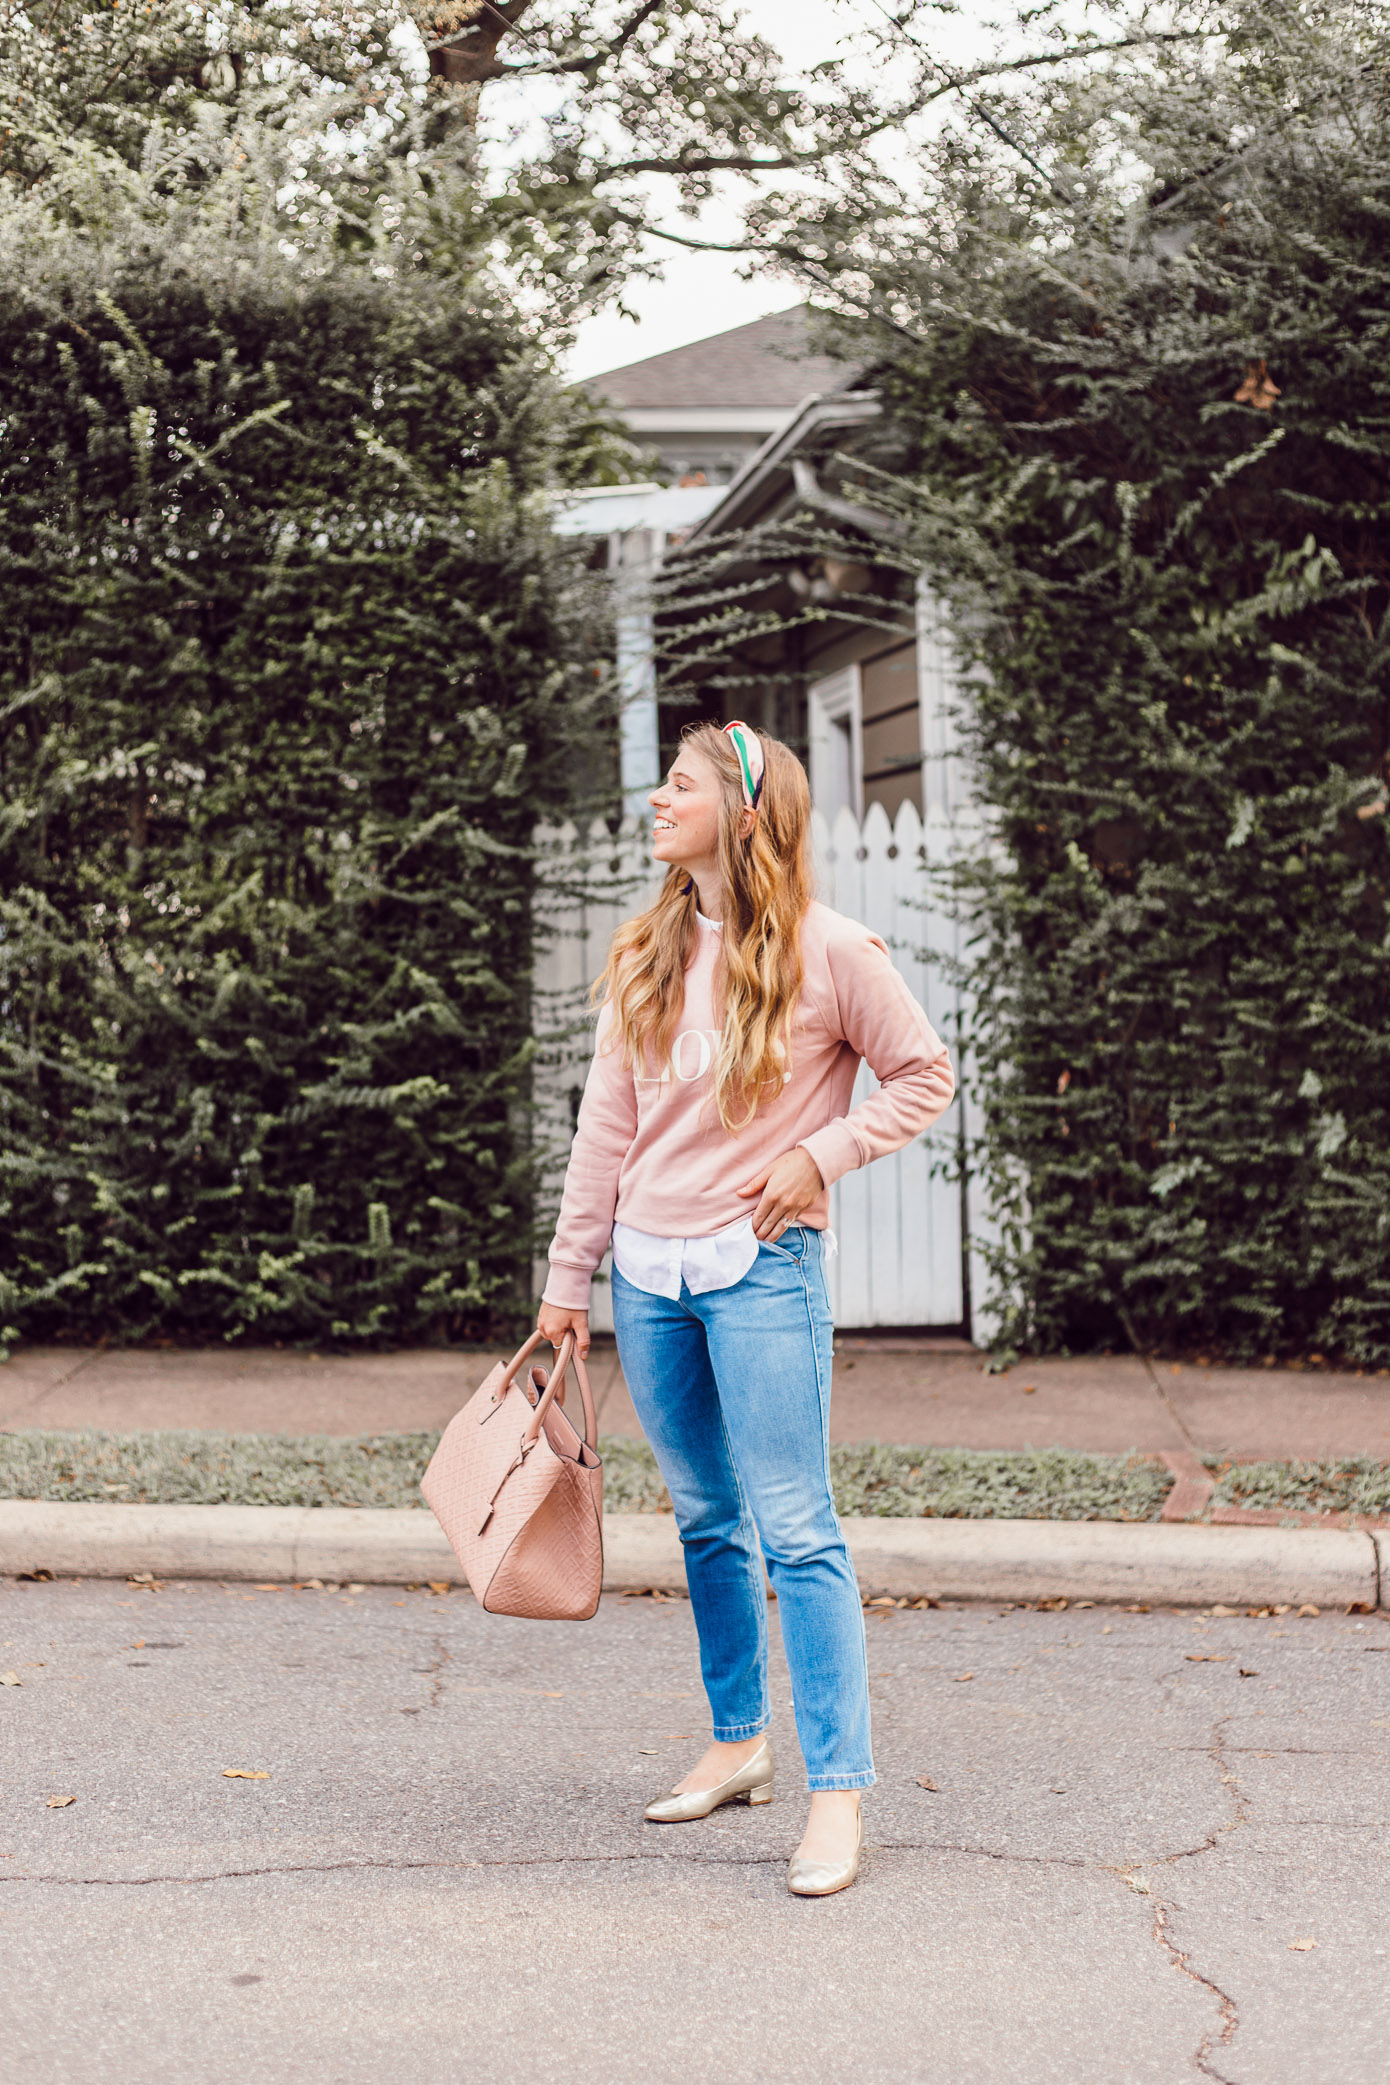 Love Graphic Sweatshirt | How to Style a Sweatshirt for a Feminine Look featured on Louella Reese Blog